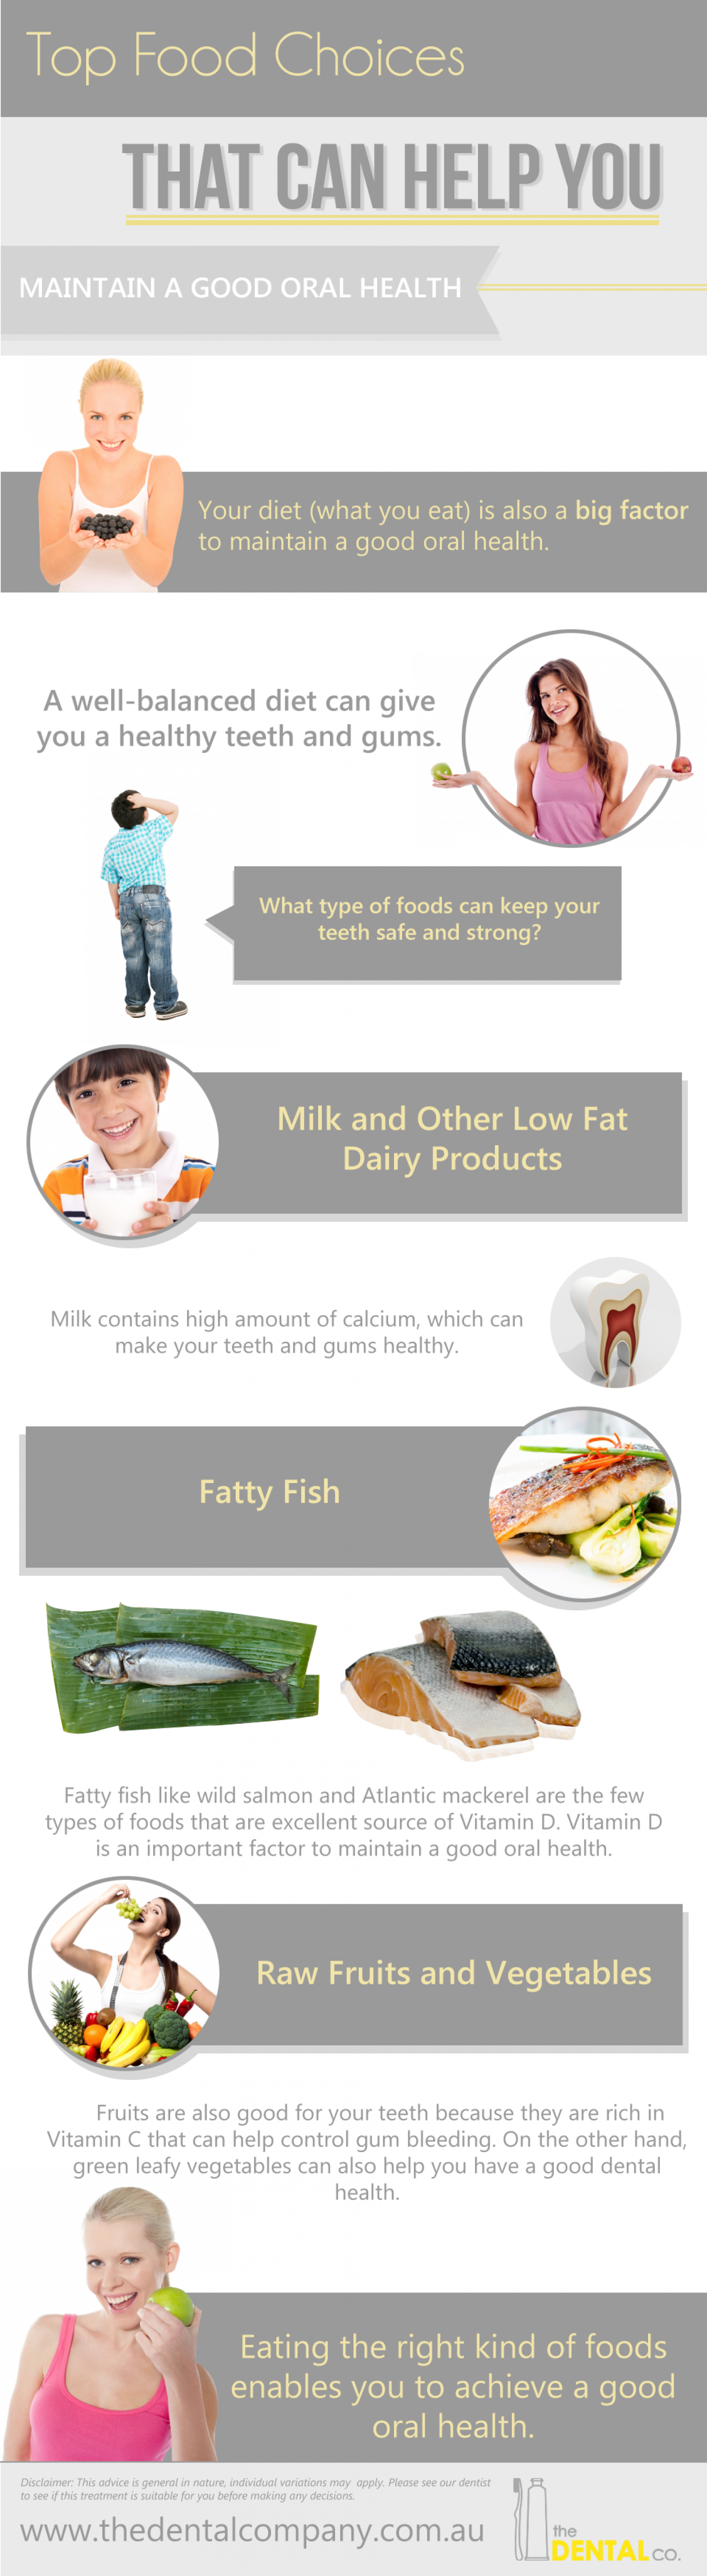 Top Food Choices That Can Help You Maintain a Good Oral Health  Infographic